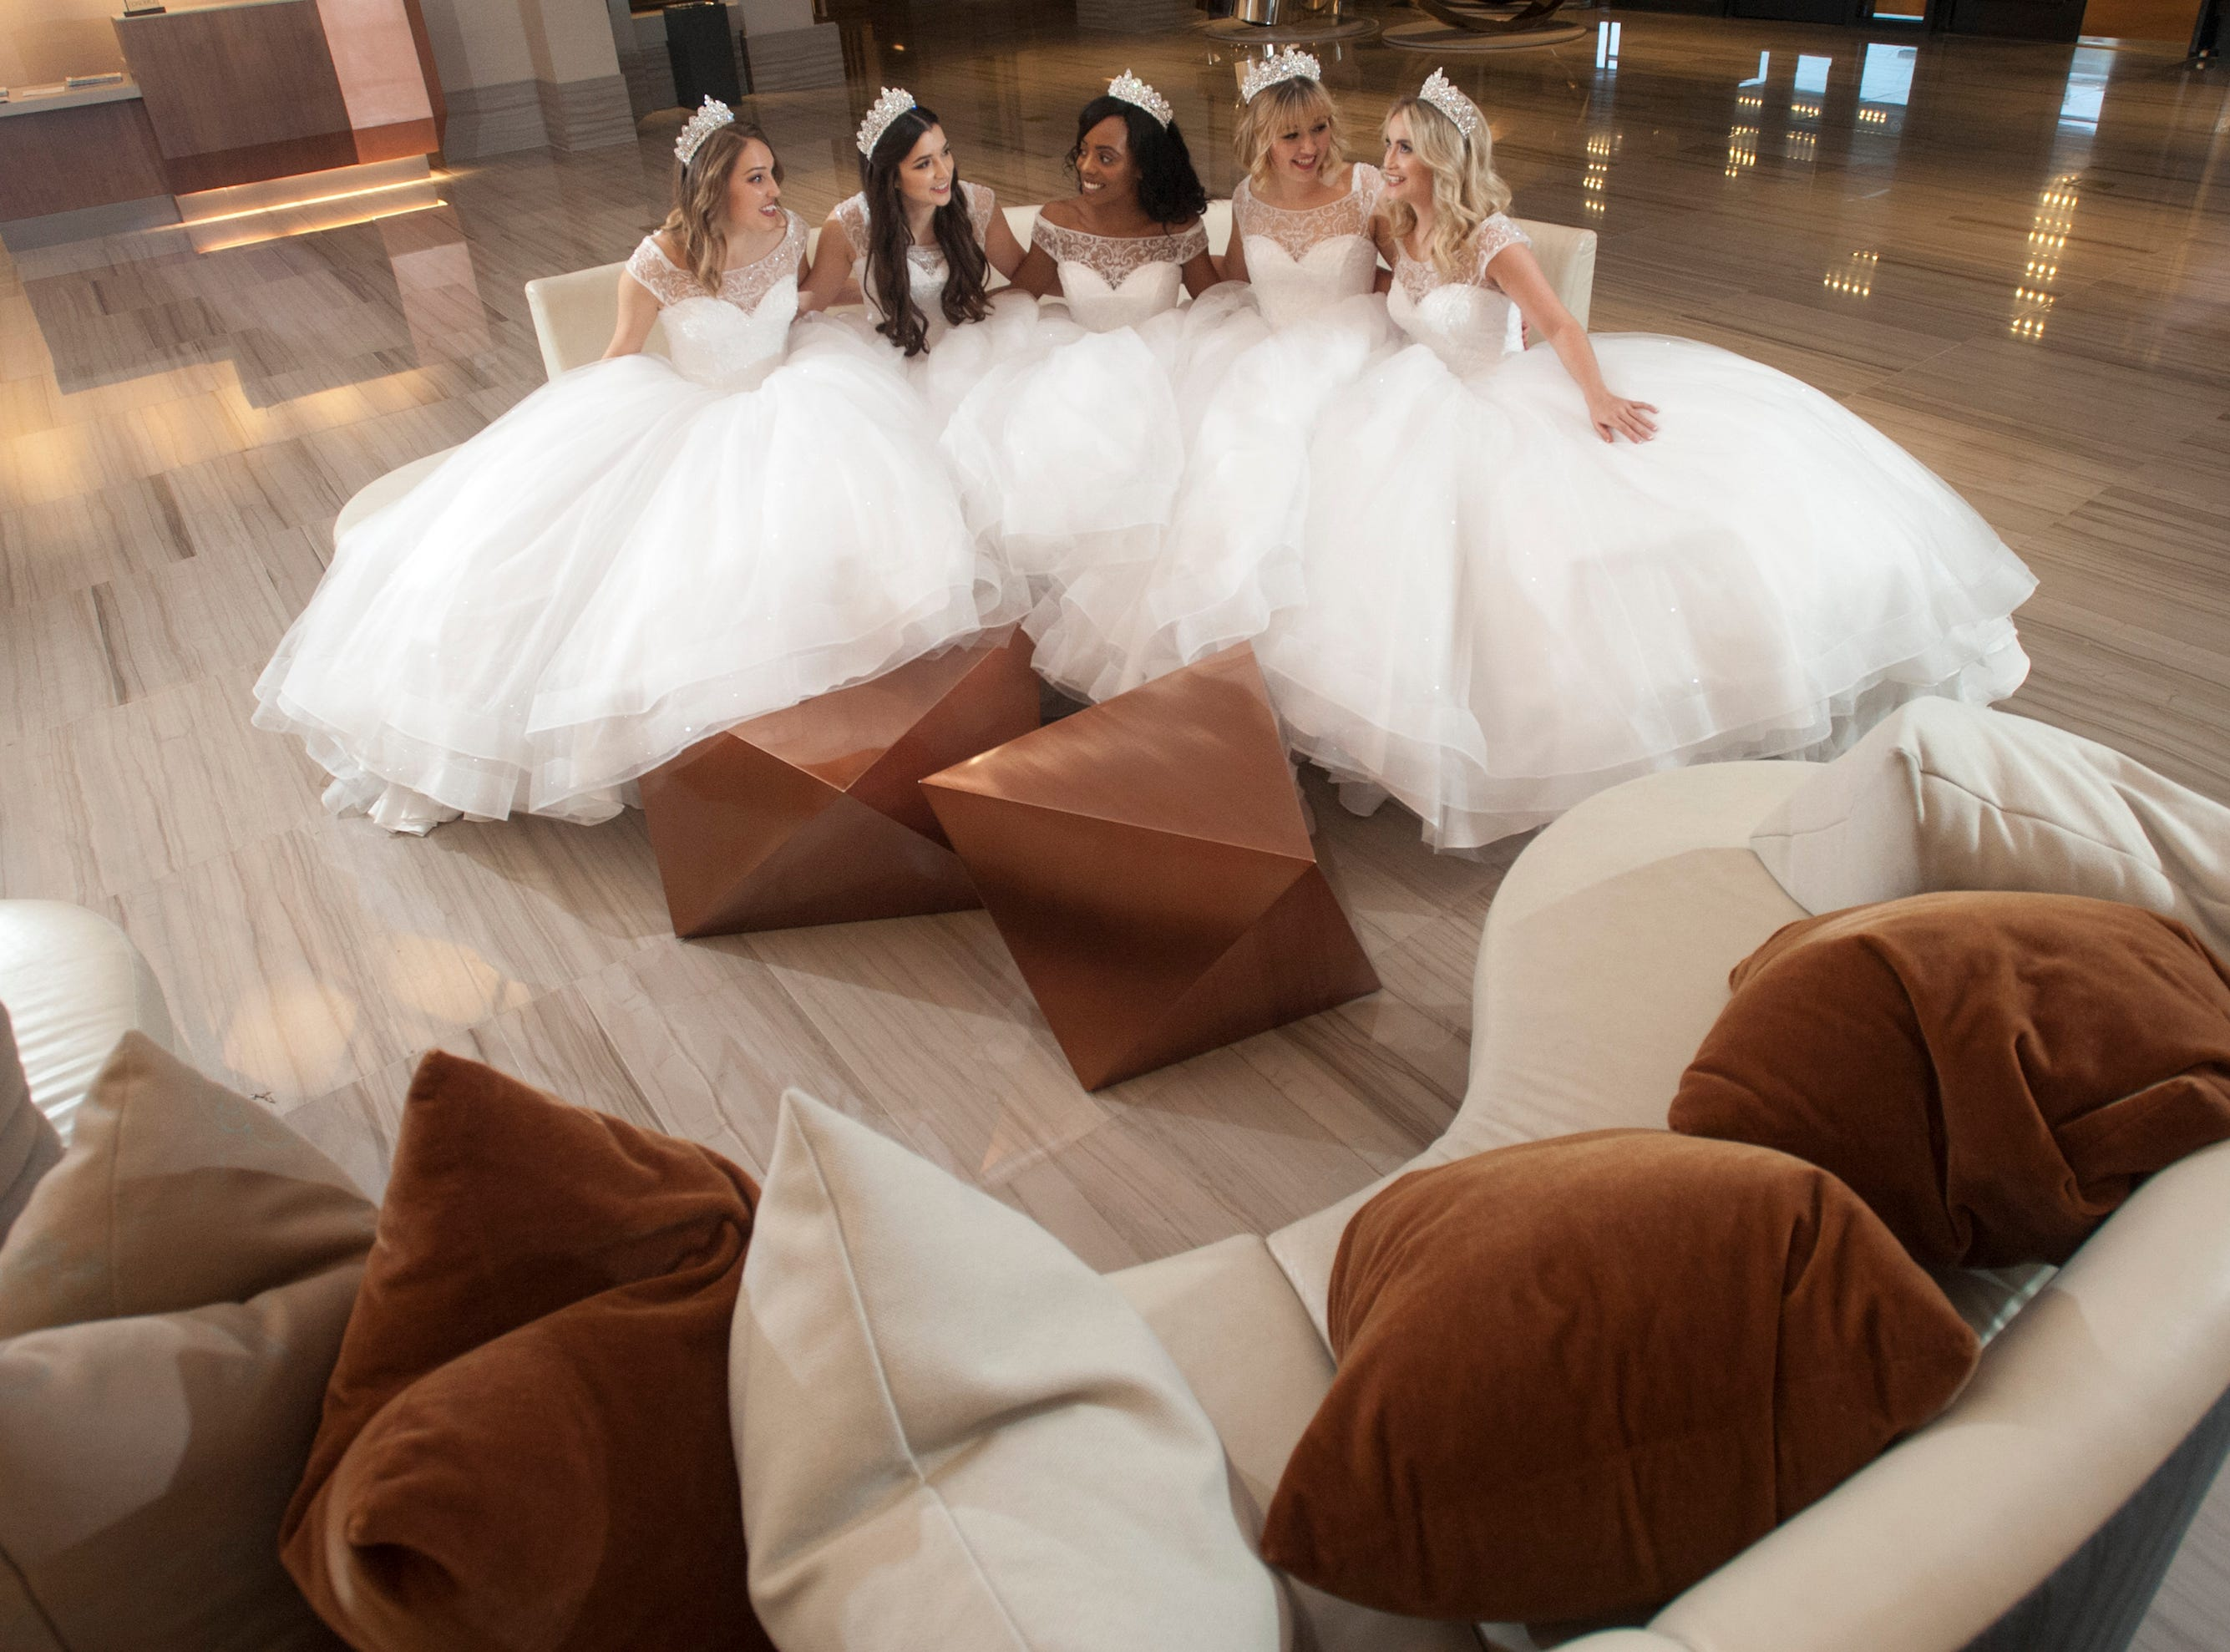 Kentucky Derby Festival Princesses (l-r) Elizabeth Seewer, 23, Mary Baker, Brittany Patillo, Kelsey Sutton and Allison Spears relax on a couch in the lobby of the Omin Louisville Hotel. January 2019